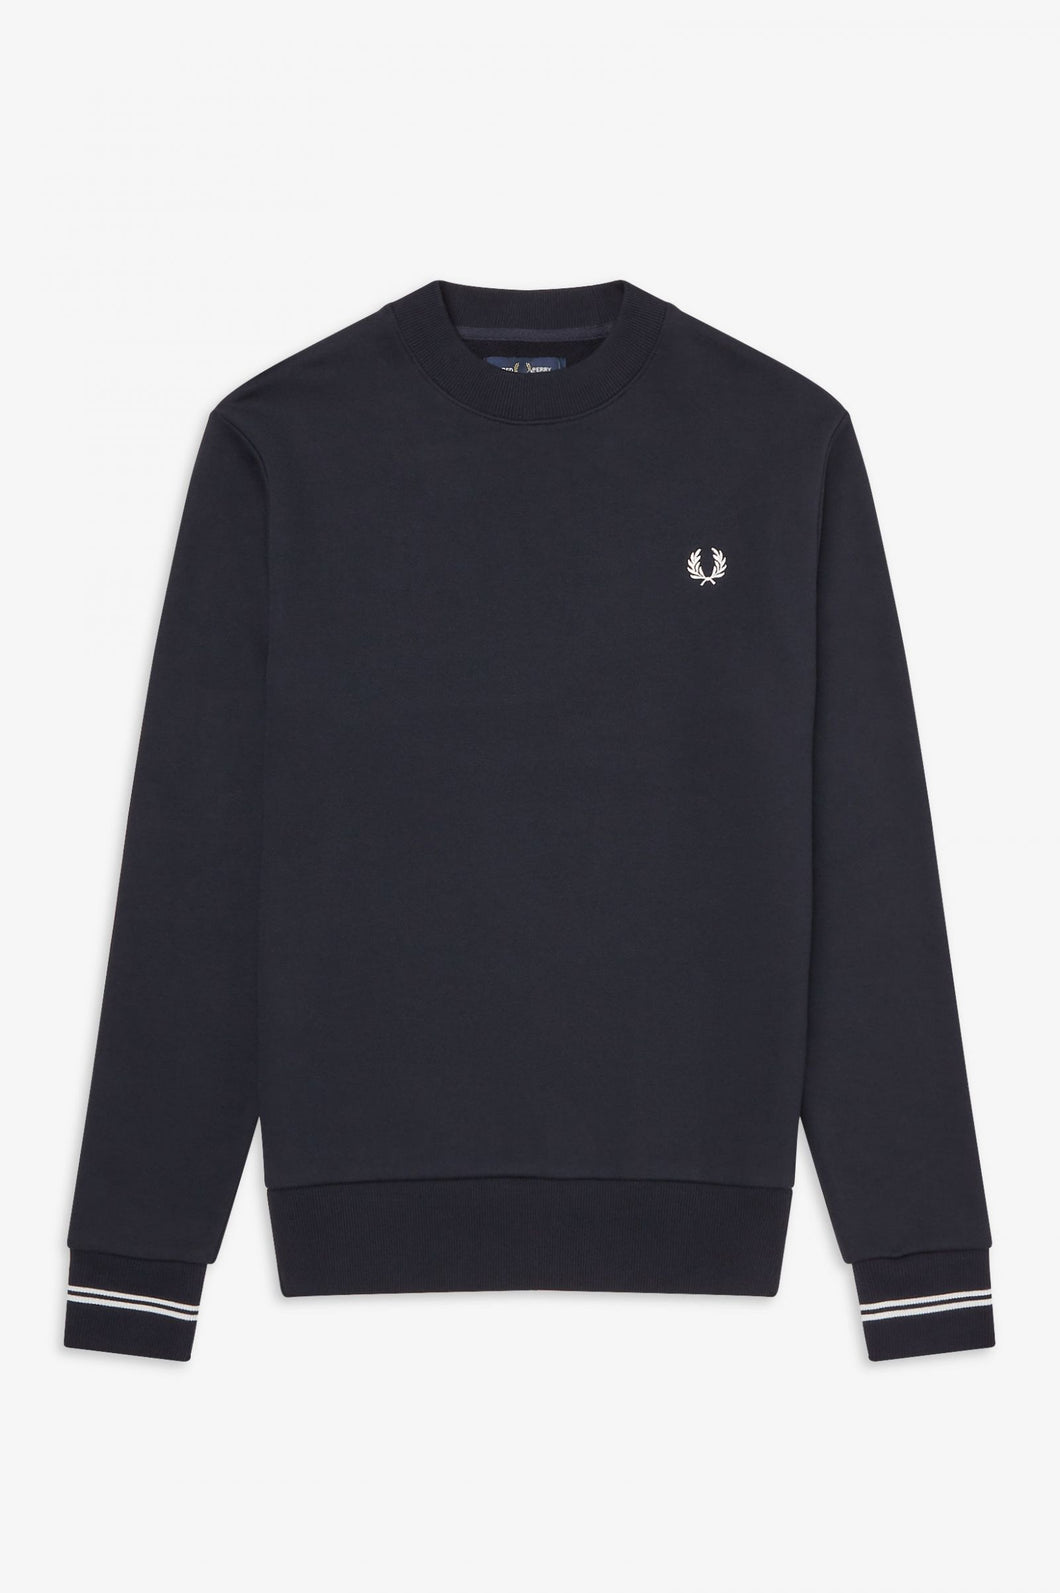 Fred Perry Navy Crew Neck Sweatshirt - M7535 - 248